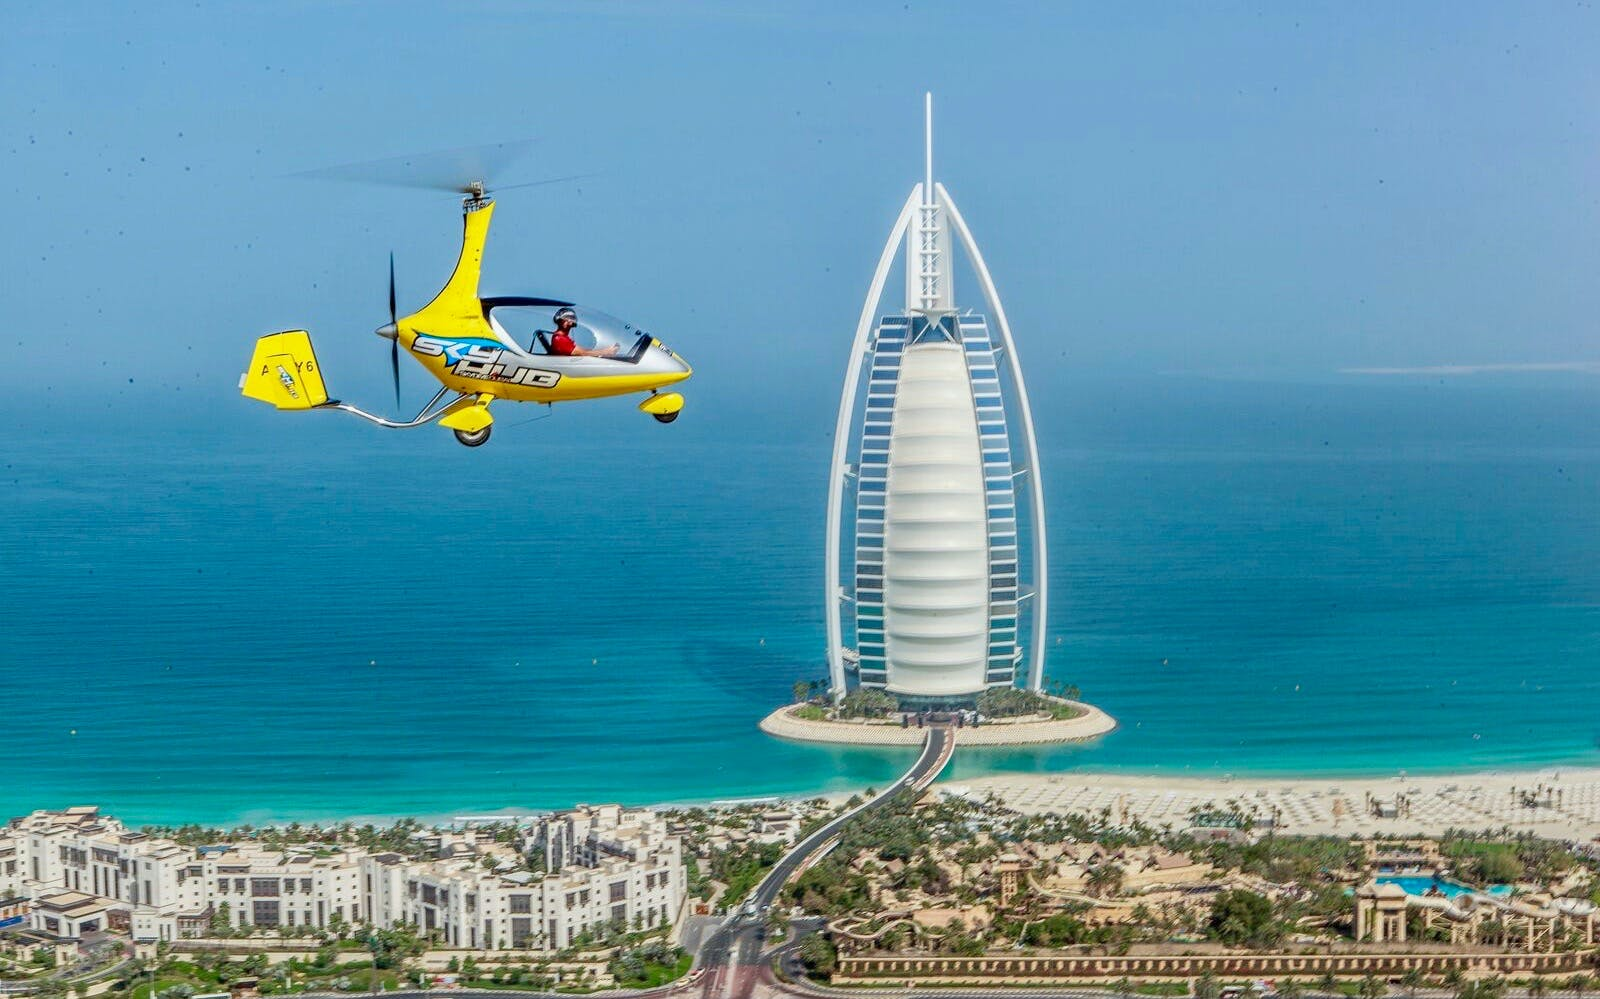 skyhub gyrocopter: private mini flight experience at the palm drop zone-1